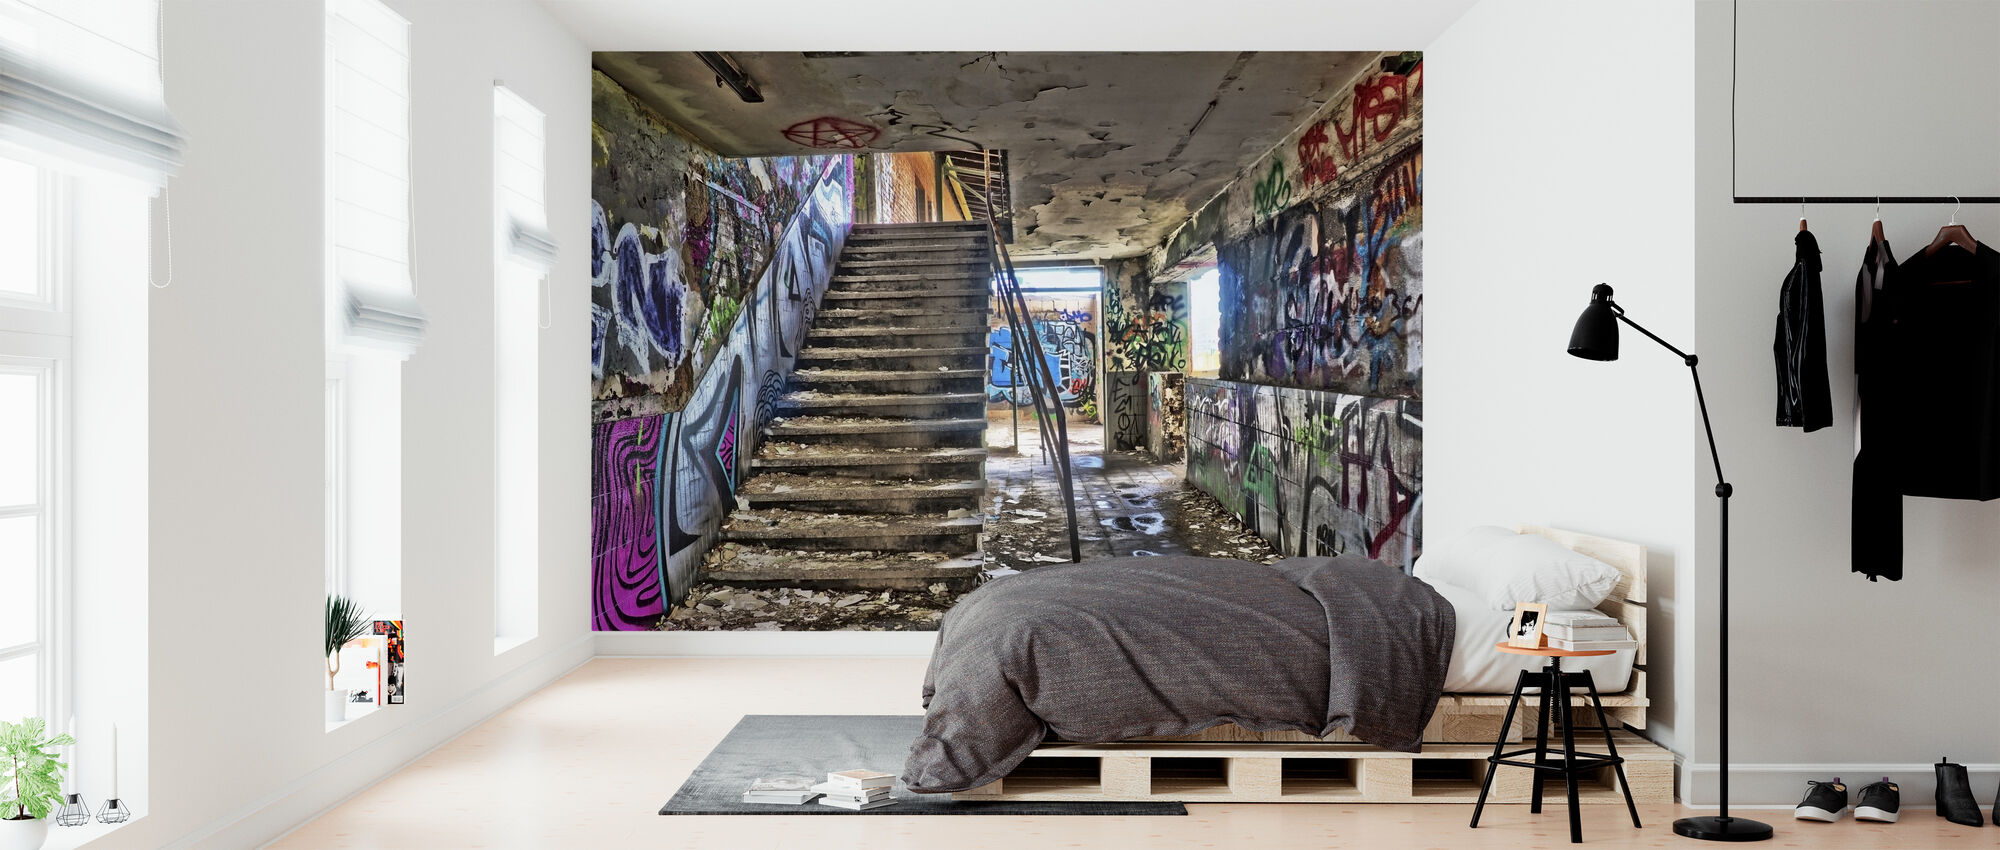 Abandoned Building Staircase - Wallpaper - Bedroom